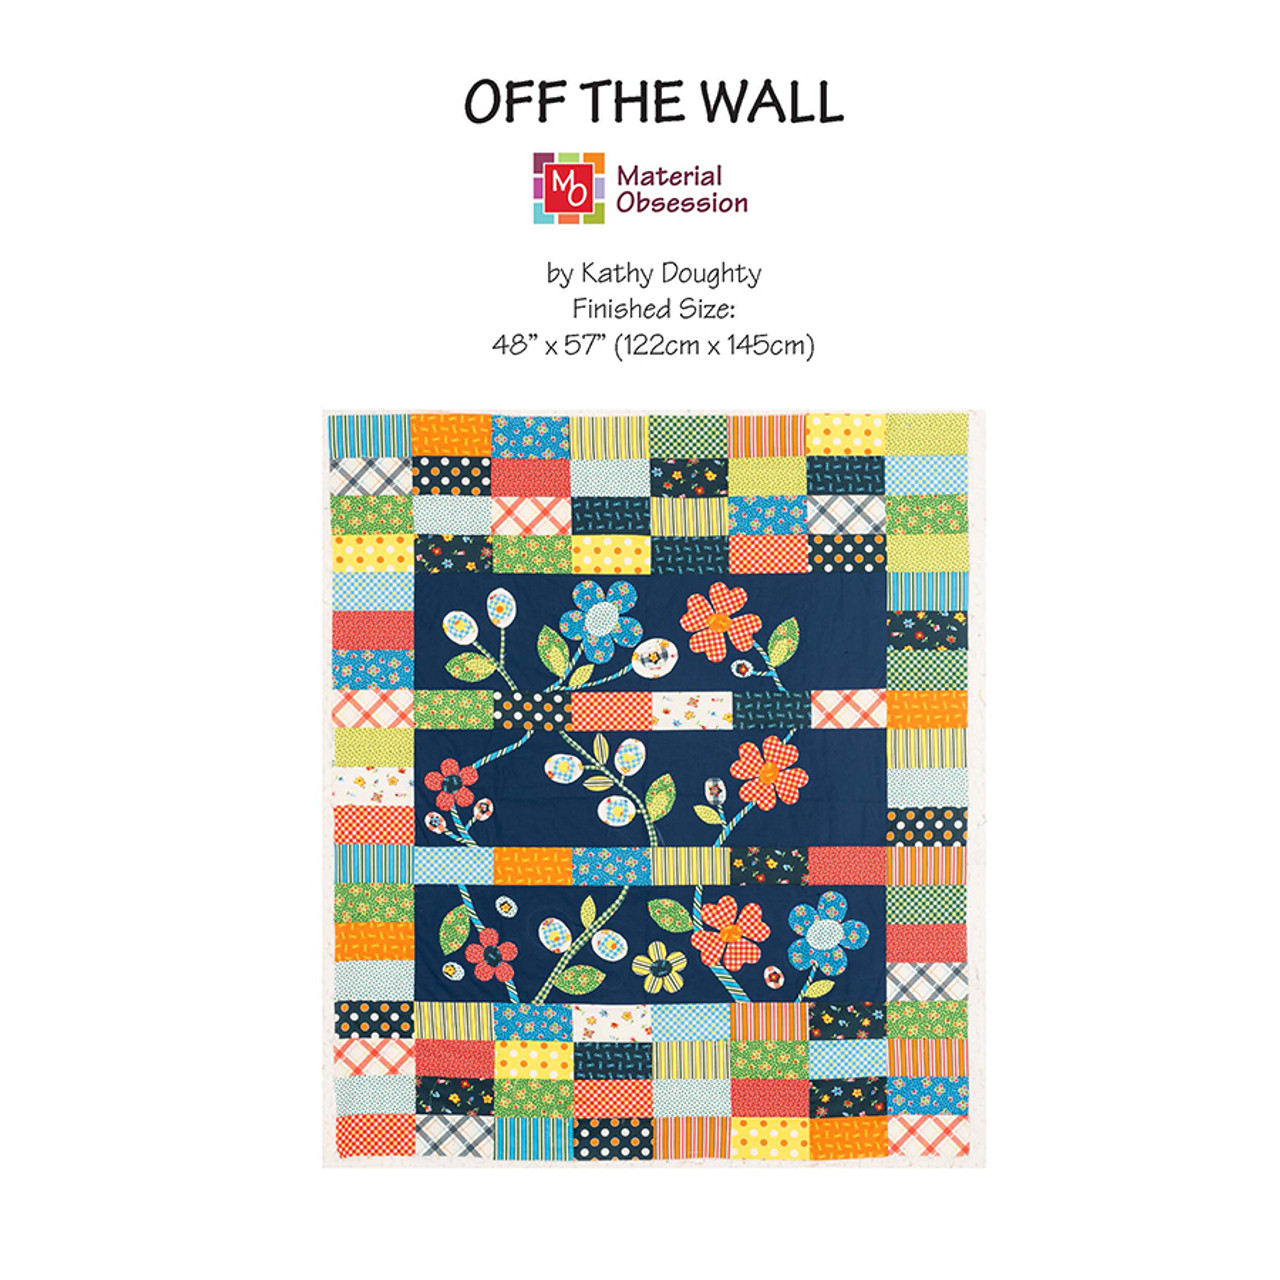 Off the Wall Pattern from Material Obsession